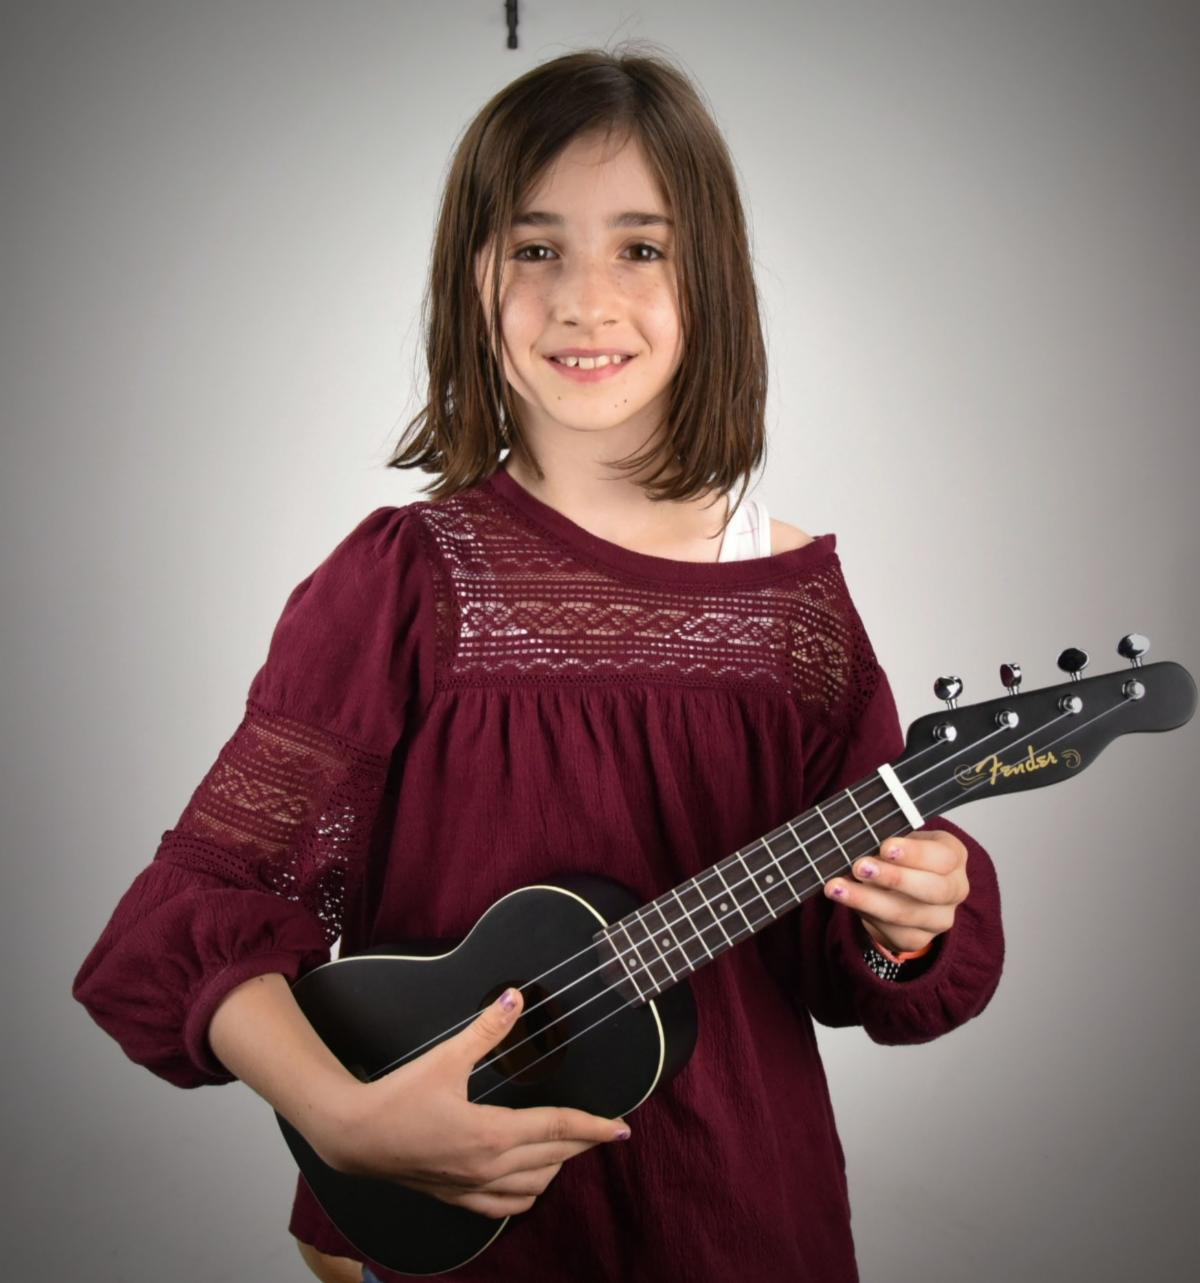 Young girl with Ukulele